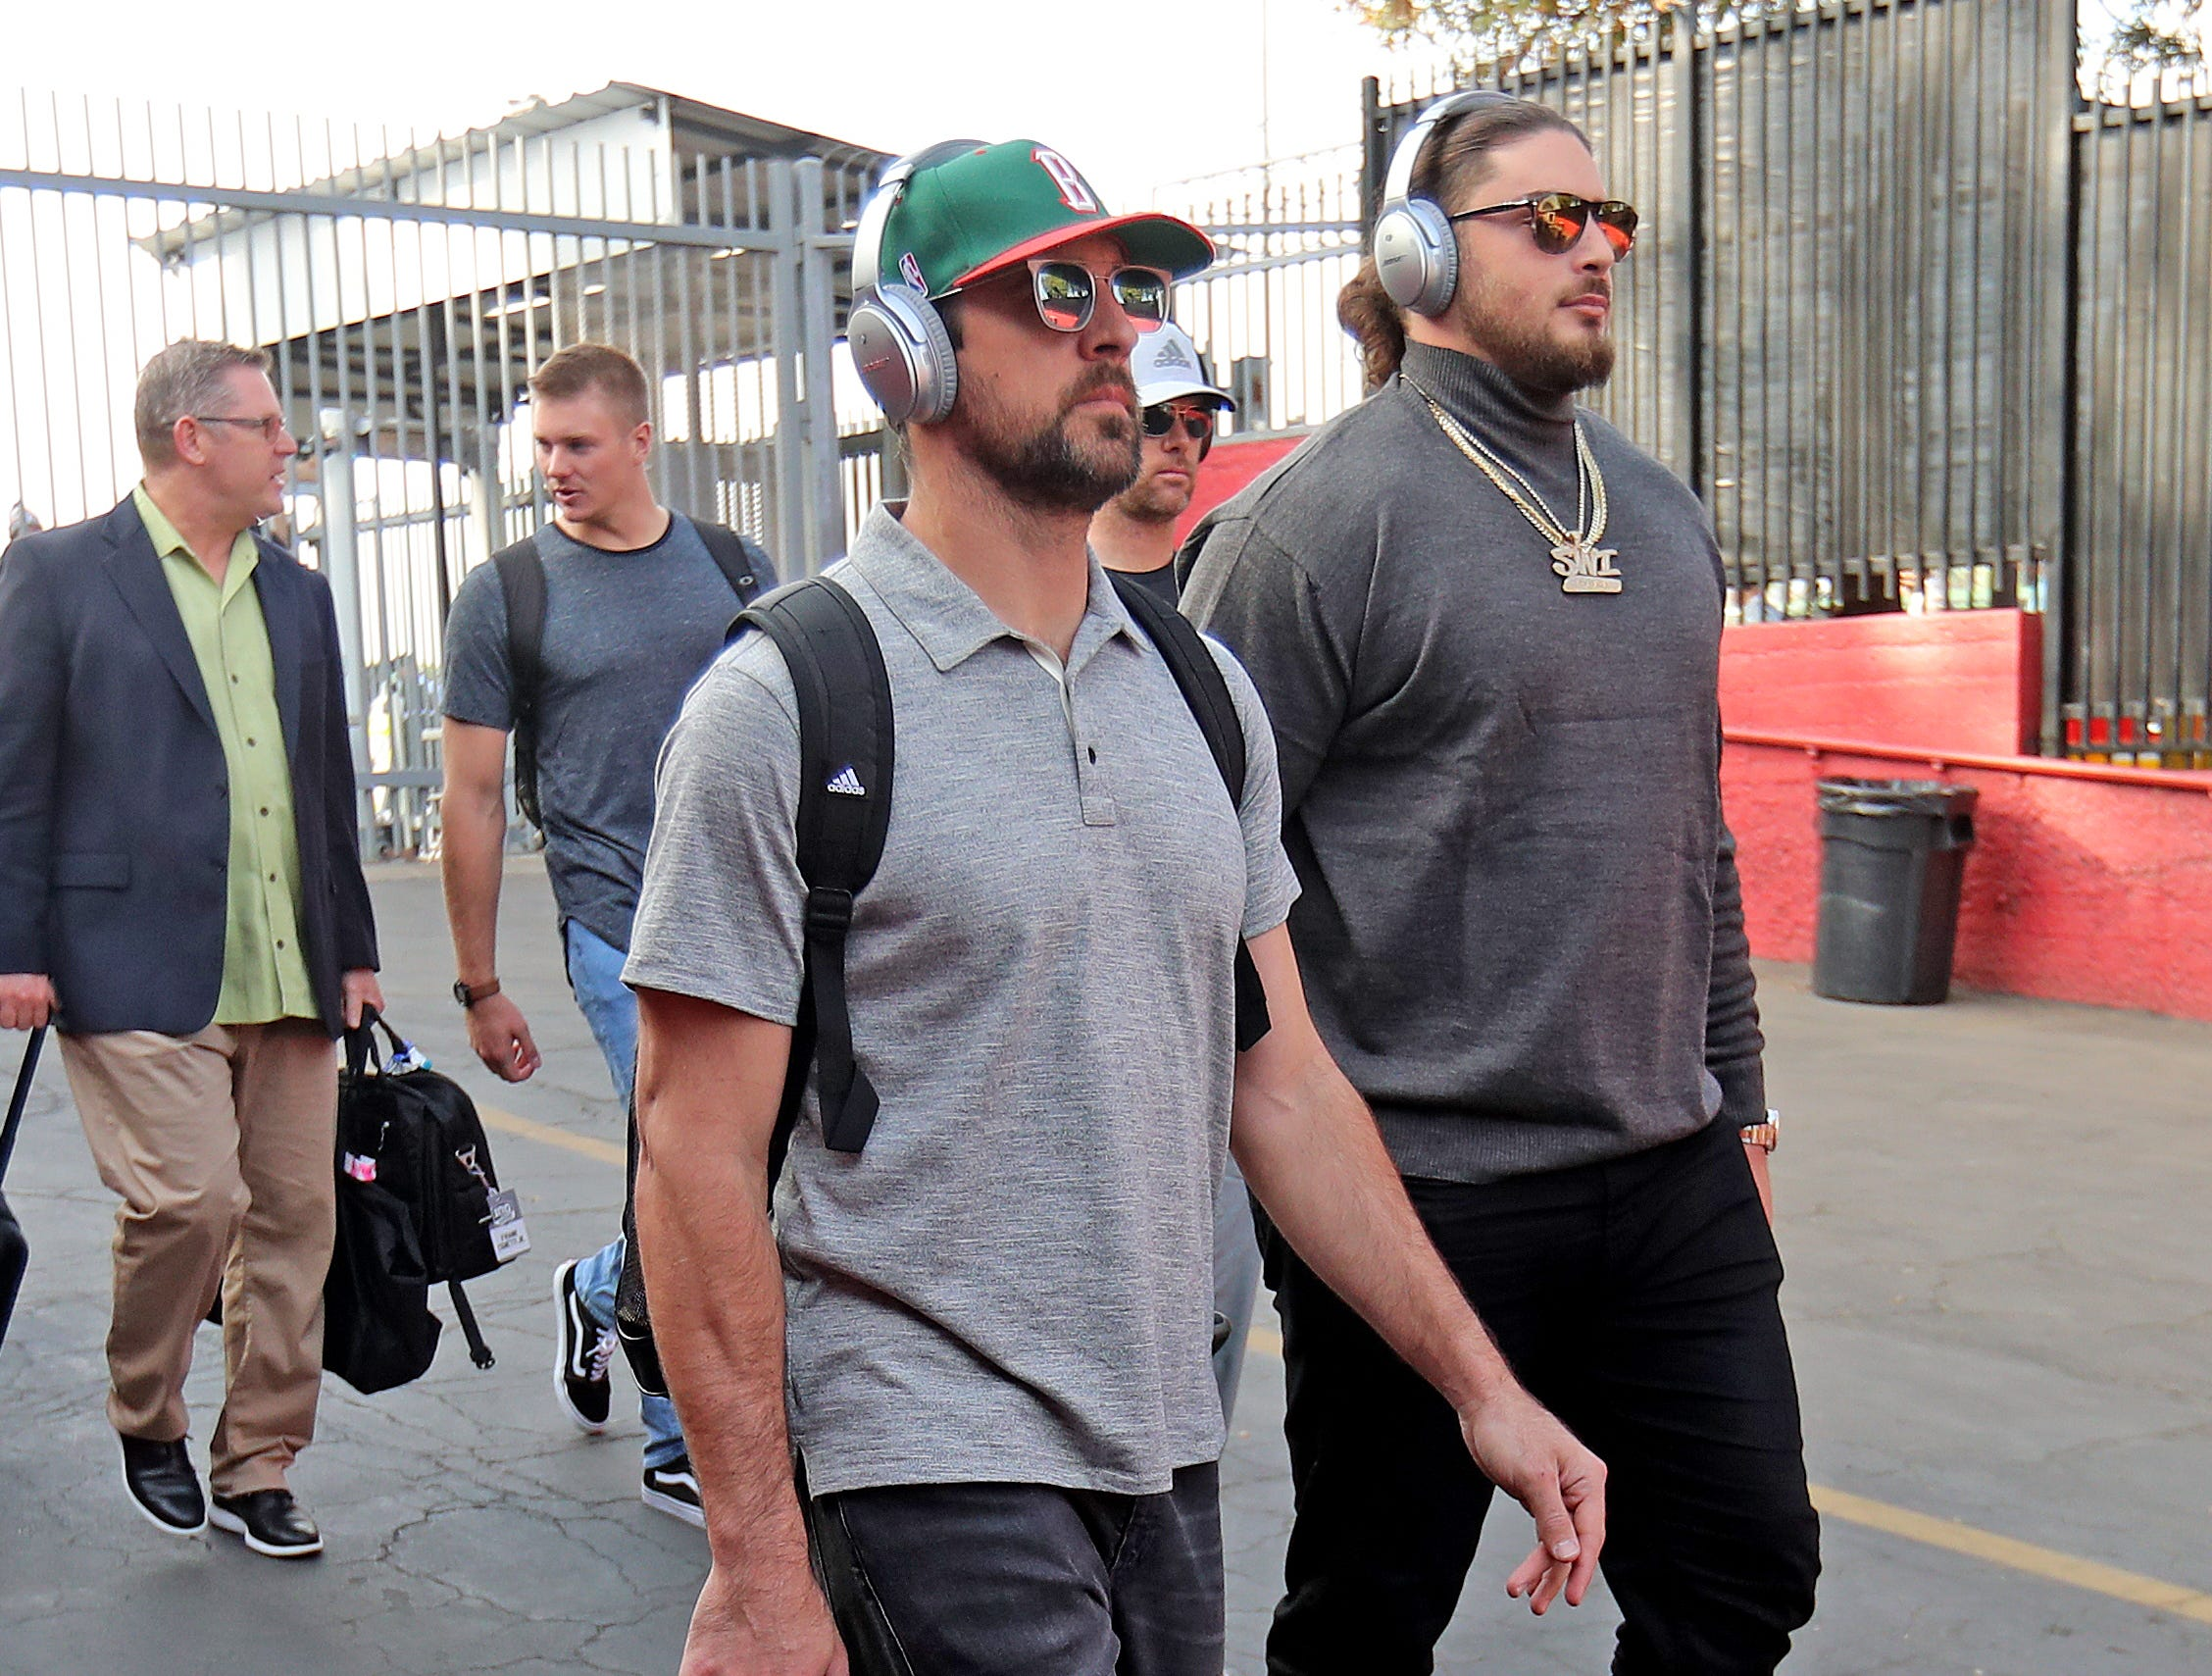 Green Bay Packers quarterback Aaron Rodgers (12) and offensive tackle David Bakhtiari (69) arrive for the game against the LA Rams Sunday, October 28, 2018 at the Memorial Coliseum in Los Angeles.